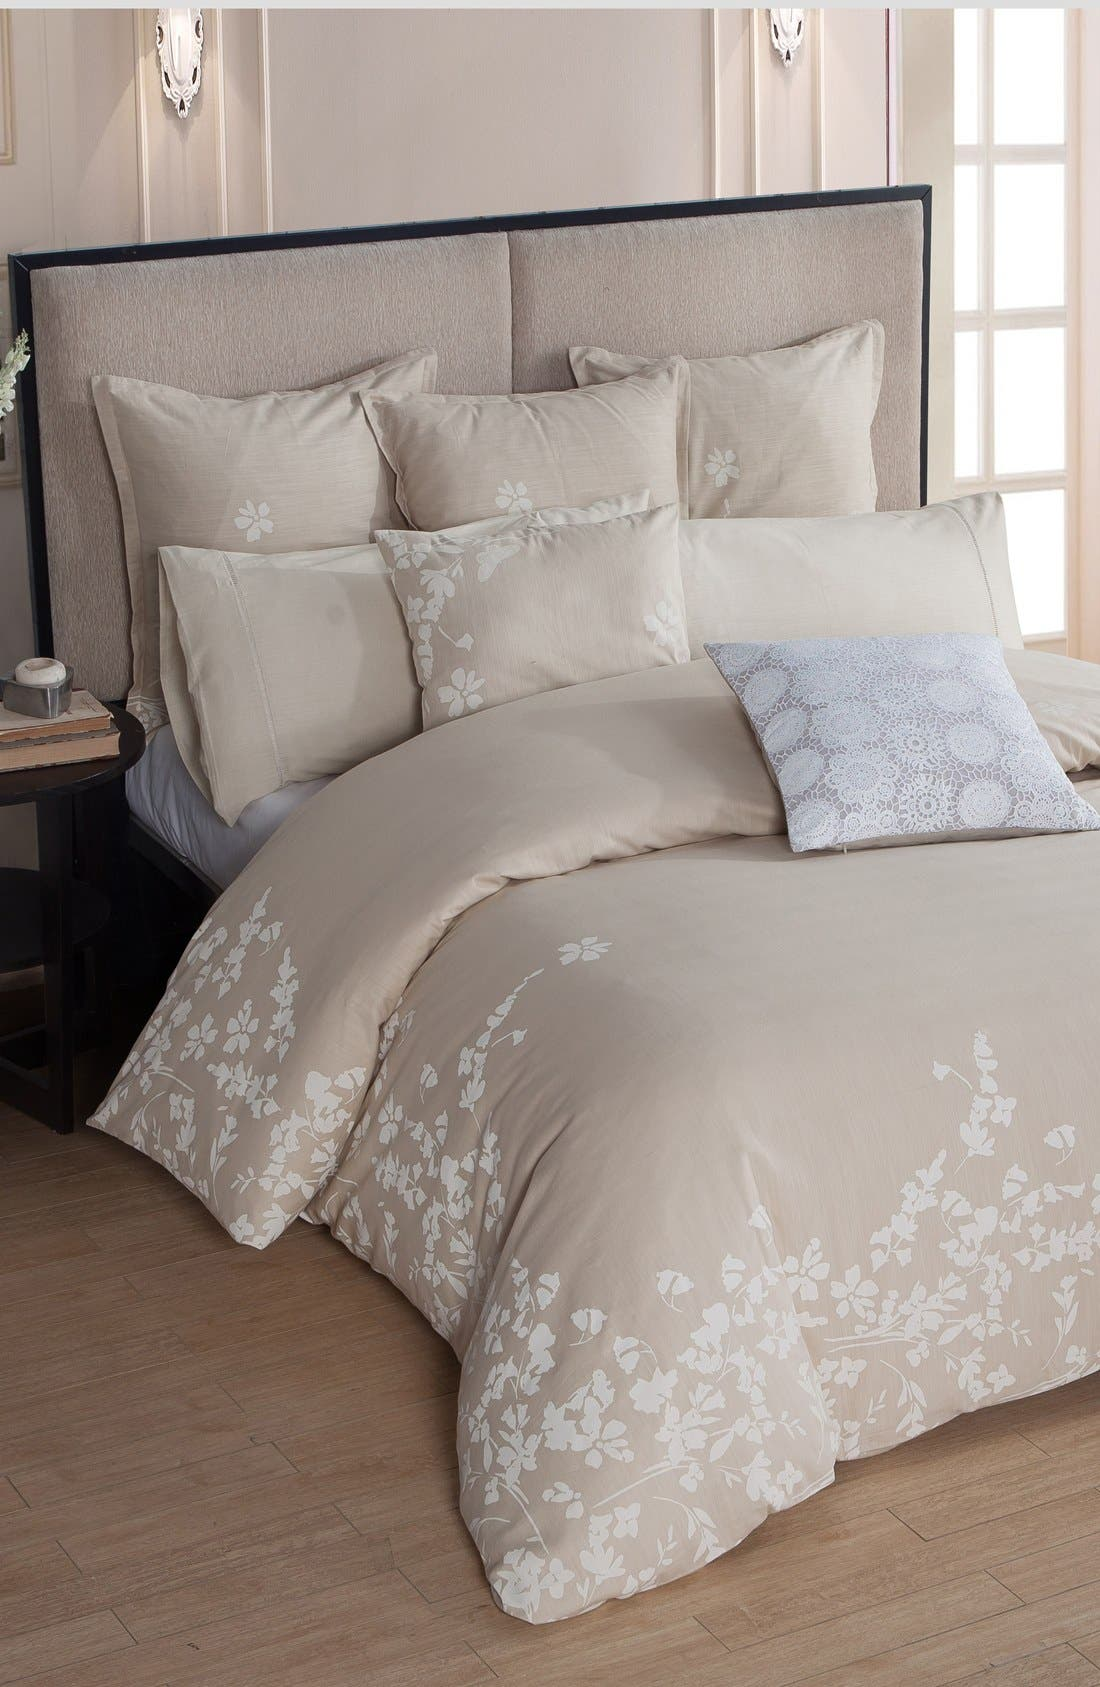 Alternate Image 1 Selected - kensie Laramie Duvet Cover & Sham Set